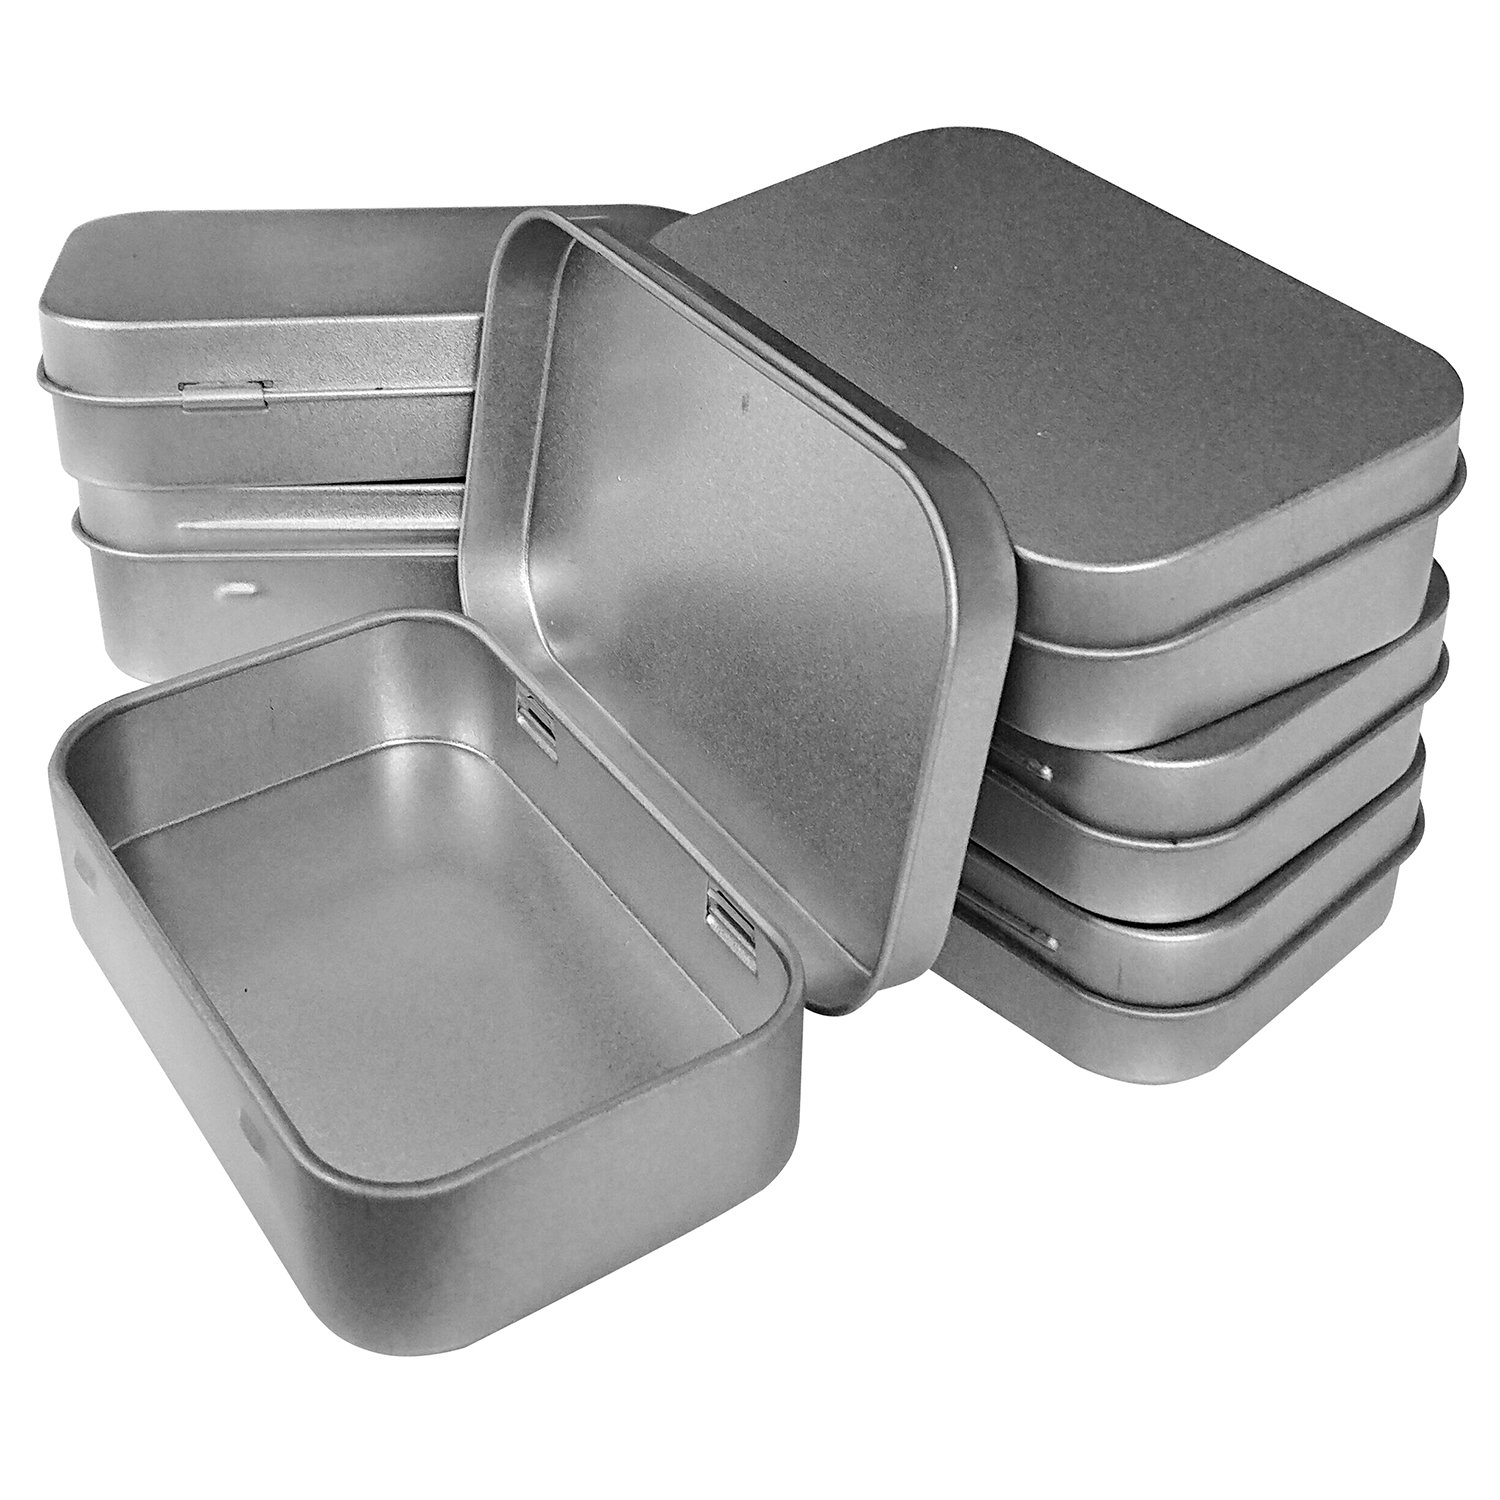 Hulless 3.75x2.45x0.8 Inch (6pcs) Metal Hinged Top Tin Box Containers,Mini Portable small storage containers Kit,Tin Box Containers,small tins with lids,craft containers,Tin empty boxes,Home Storage.